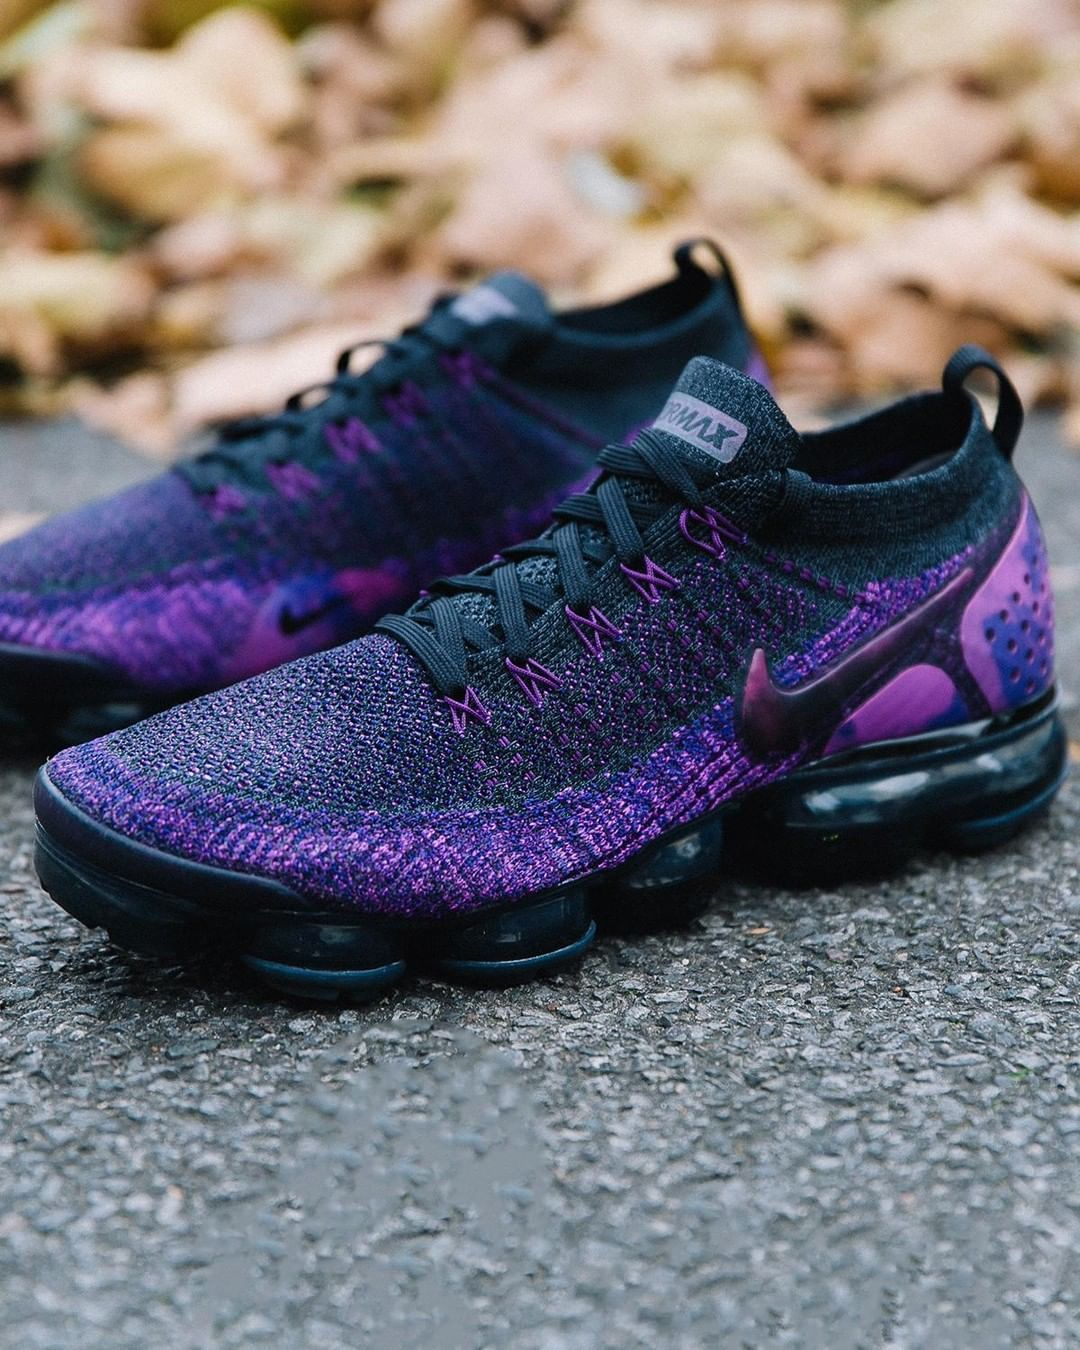 27bbe33860 Nike Air Vapormax Flyknit 2 'Night Purple' | Sneakers in 2019 | Nike ...